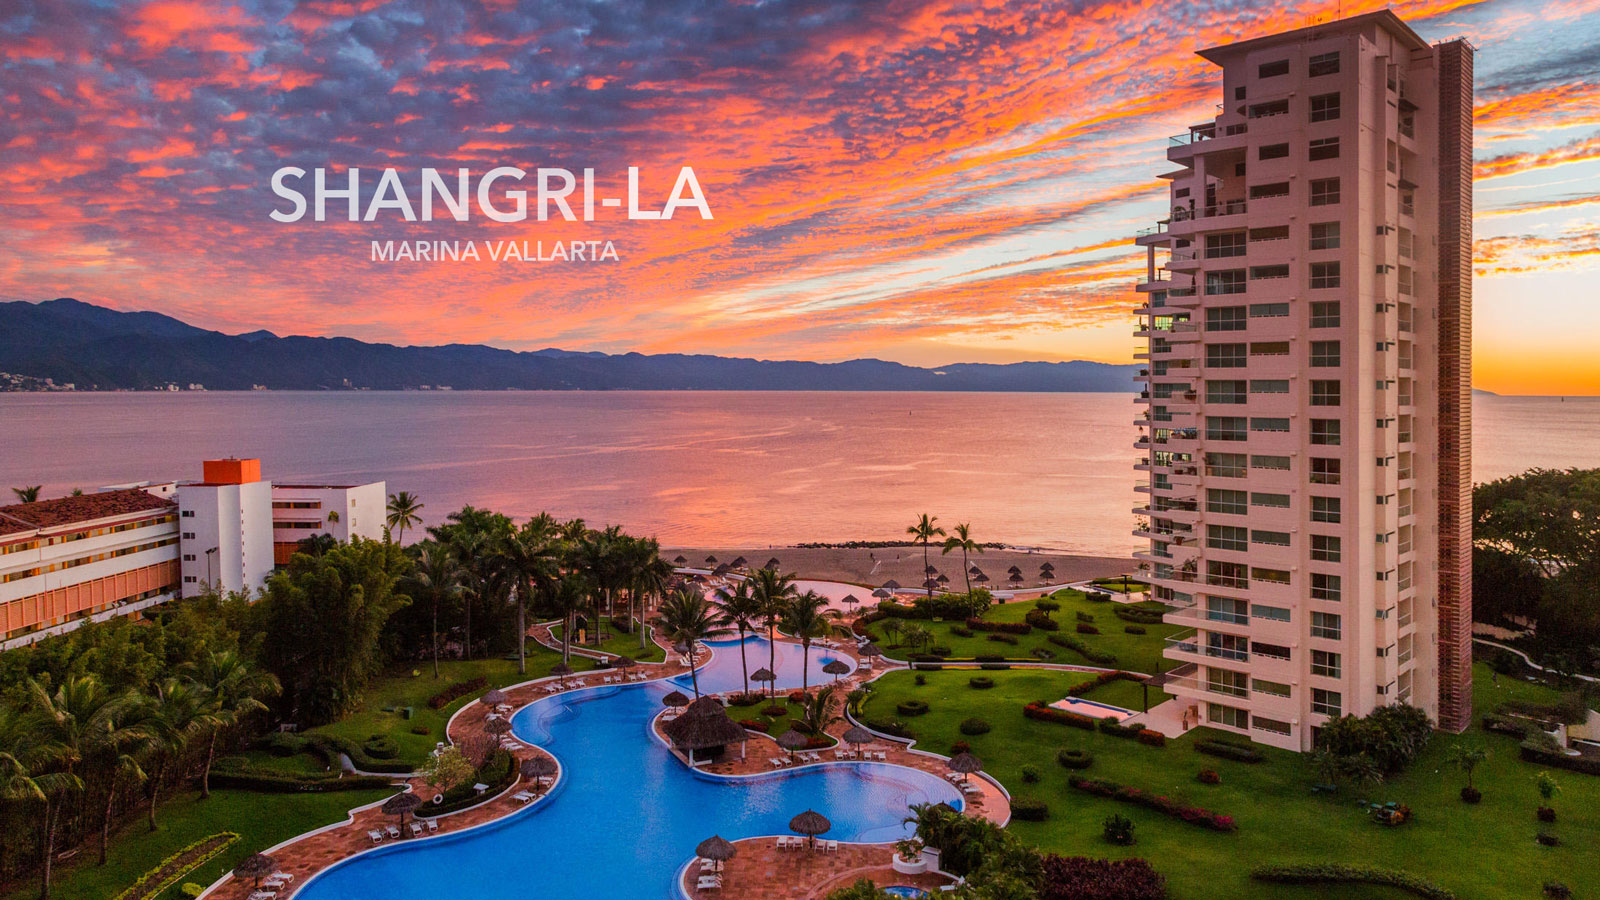 Shangri-La - Marina Vallarta - Puerto Vallarta condos for sale and rent - LPR Luxury real estate and vacation rentals